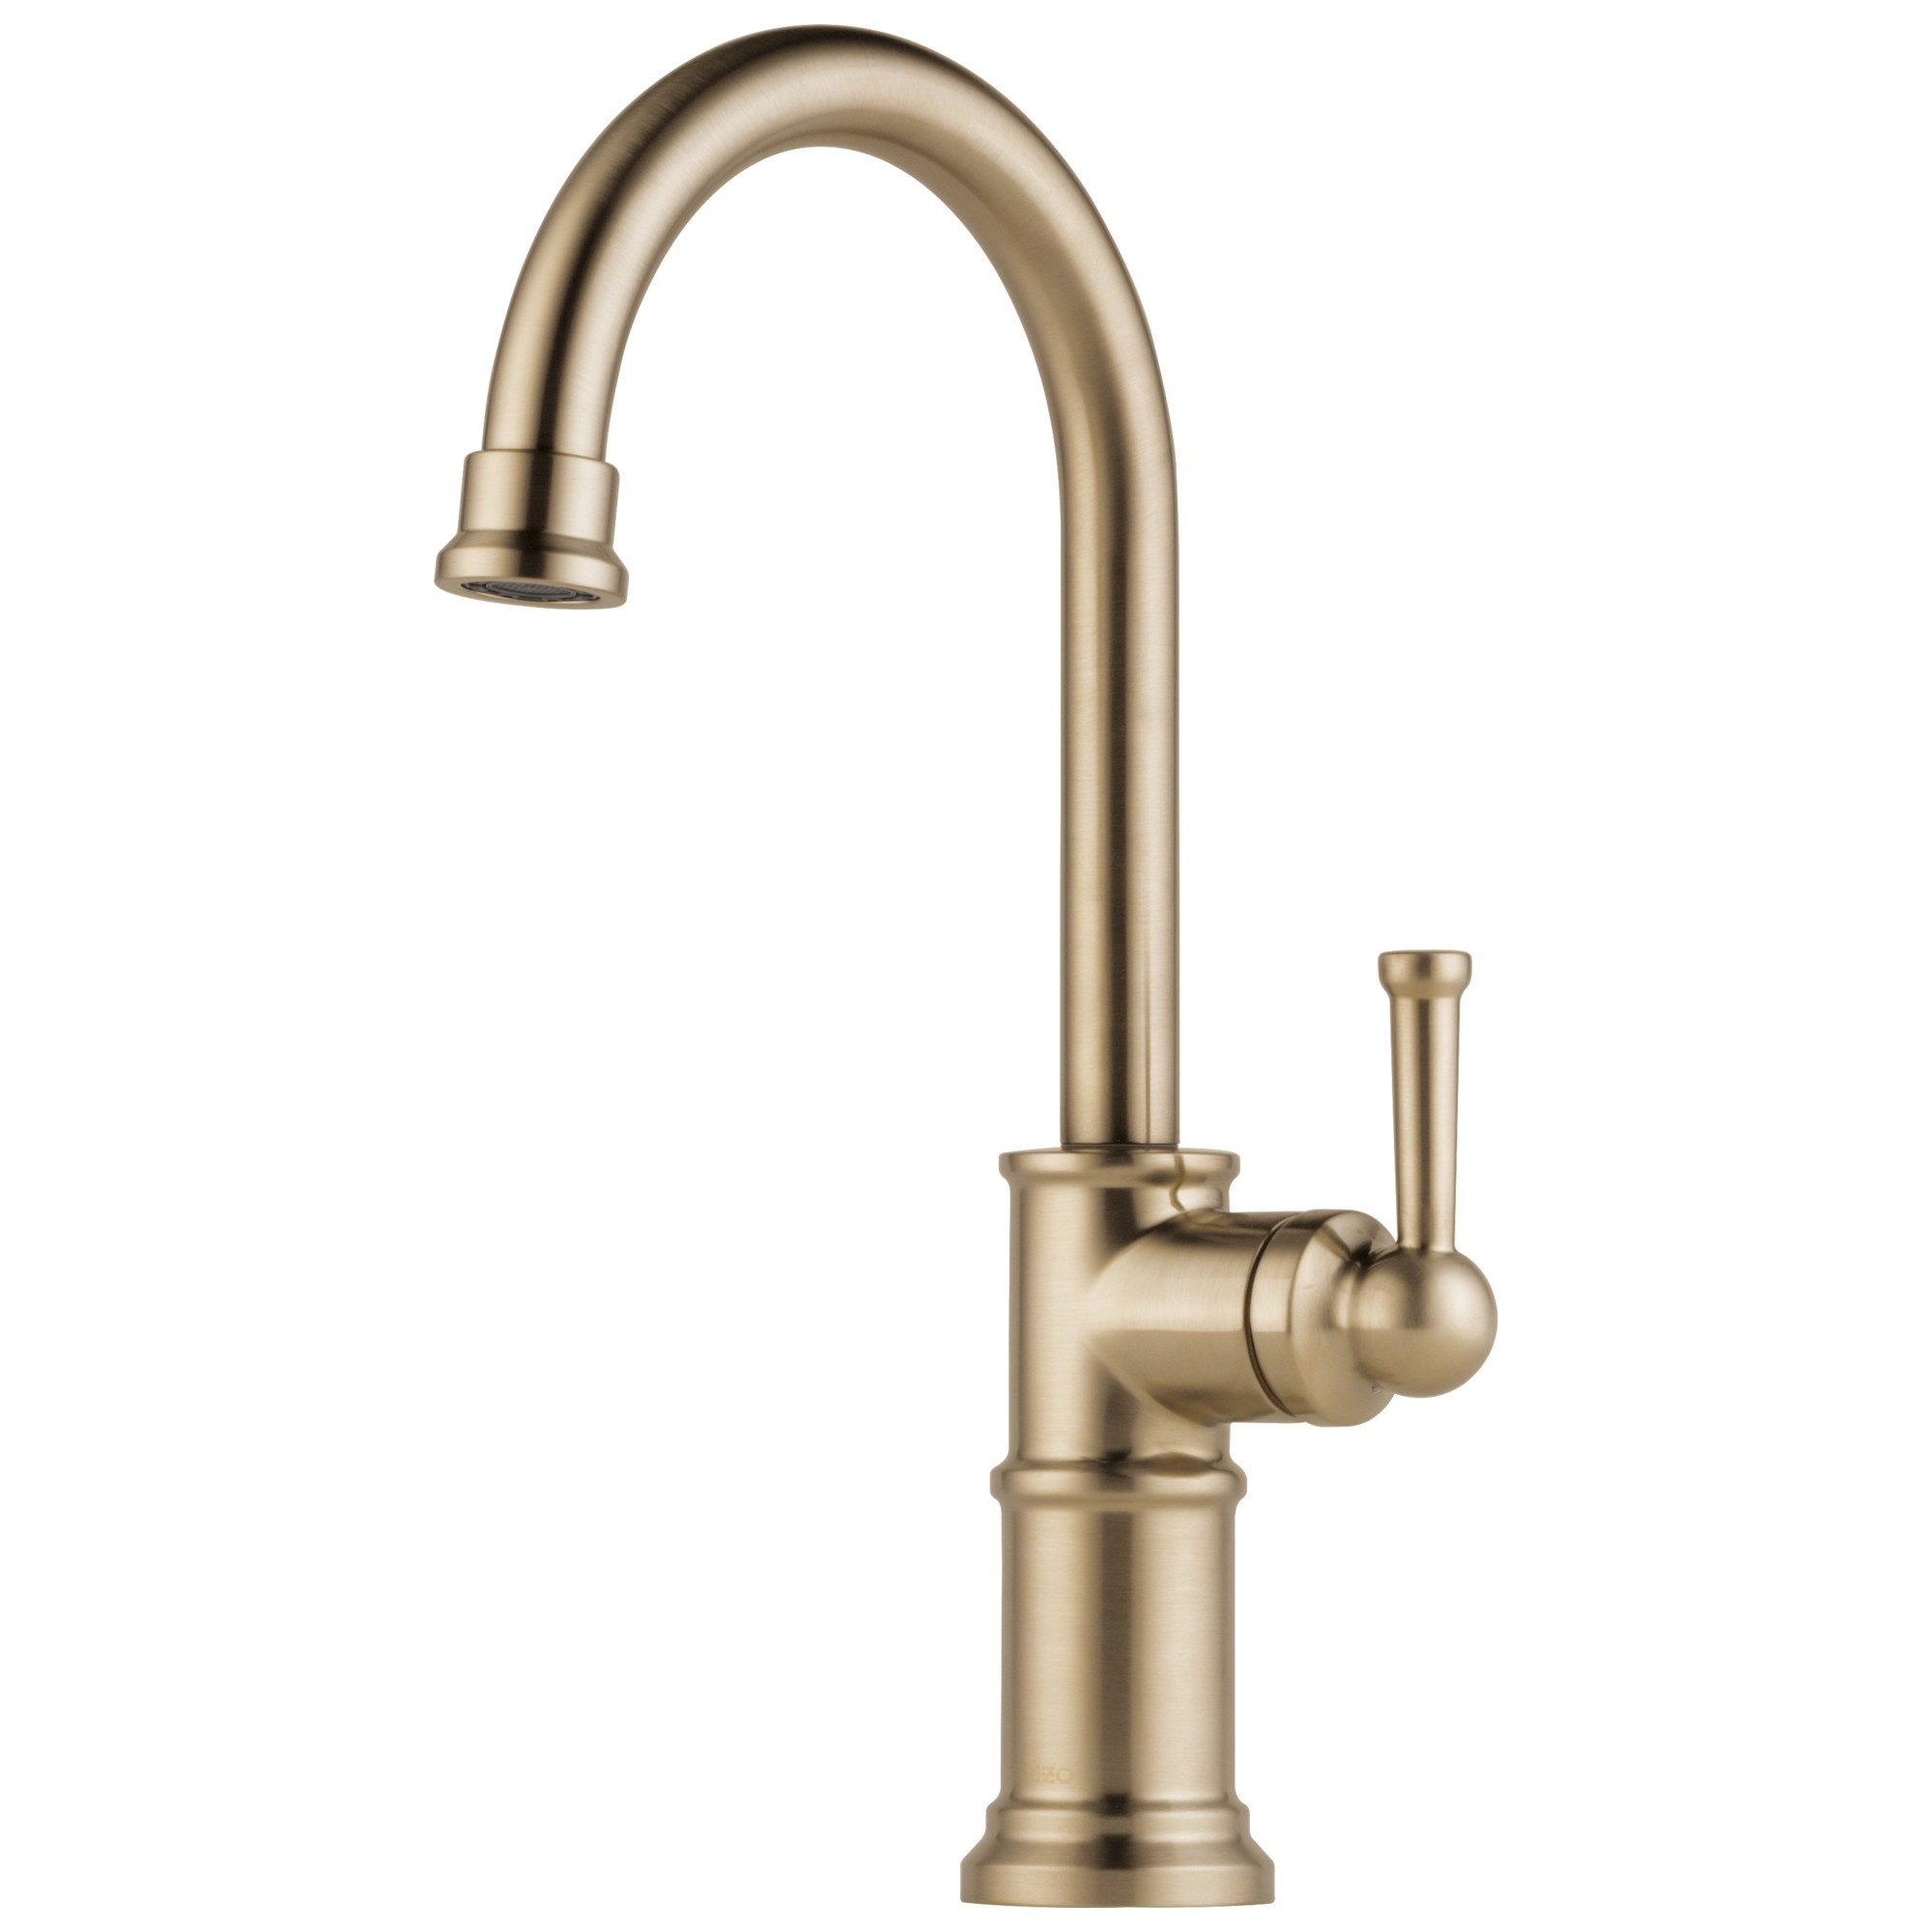 Brizo 61025LF-GL Artesso Single Handle Bar Faucet - Luxe Gold